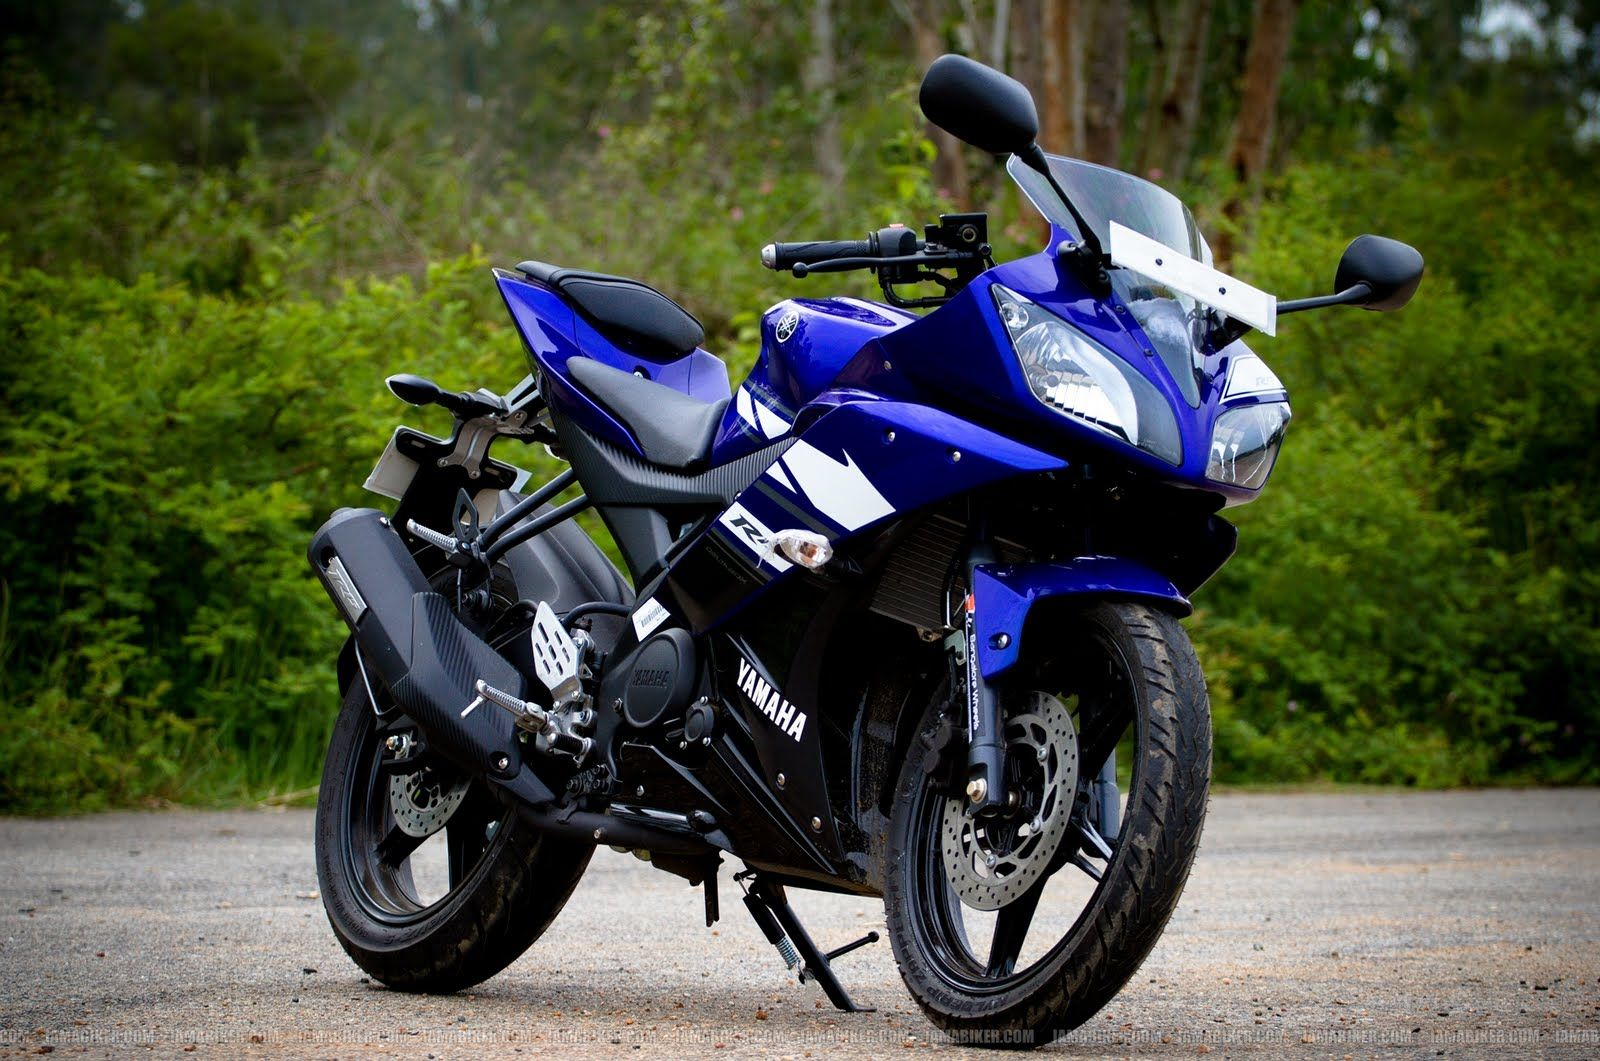 pic new posts: yamaha r15 v2 hd wallpapers | all wallpapers